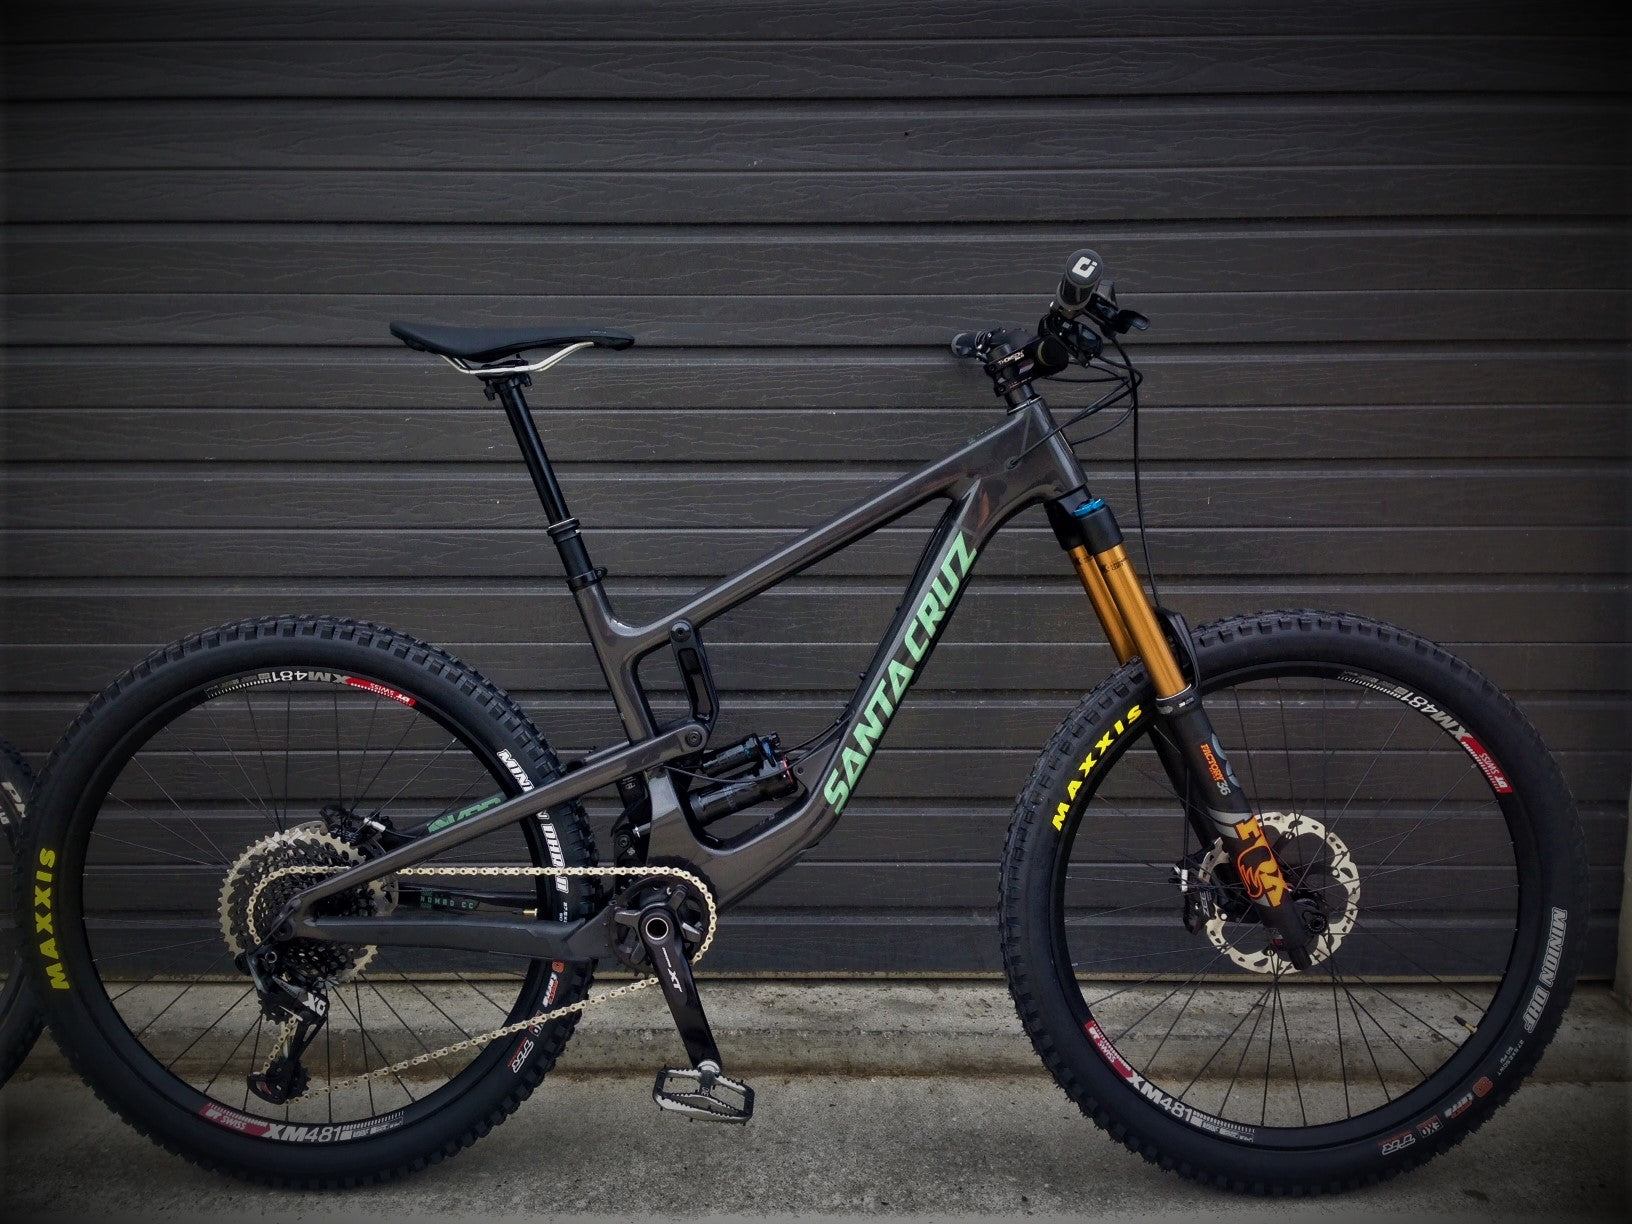 8aea47698d5 2019 Santa Cruz Nomad Custom Build